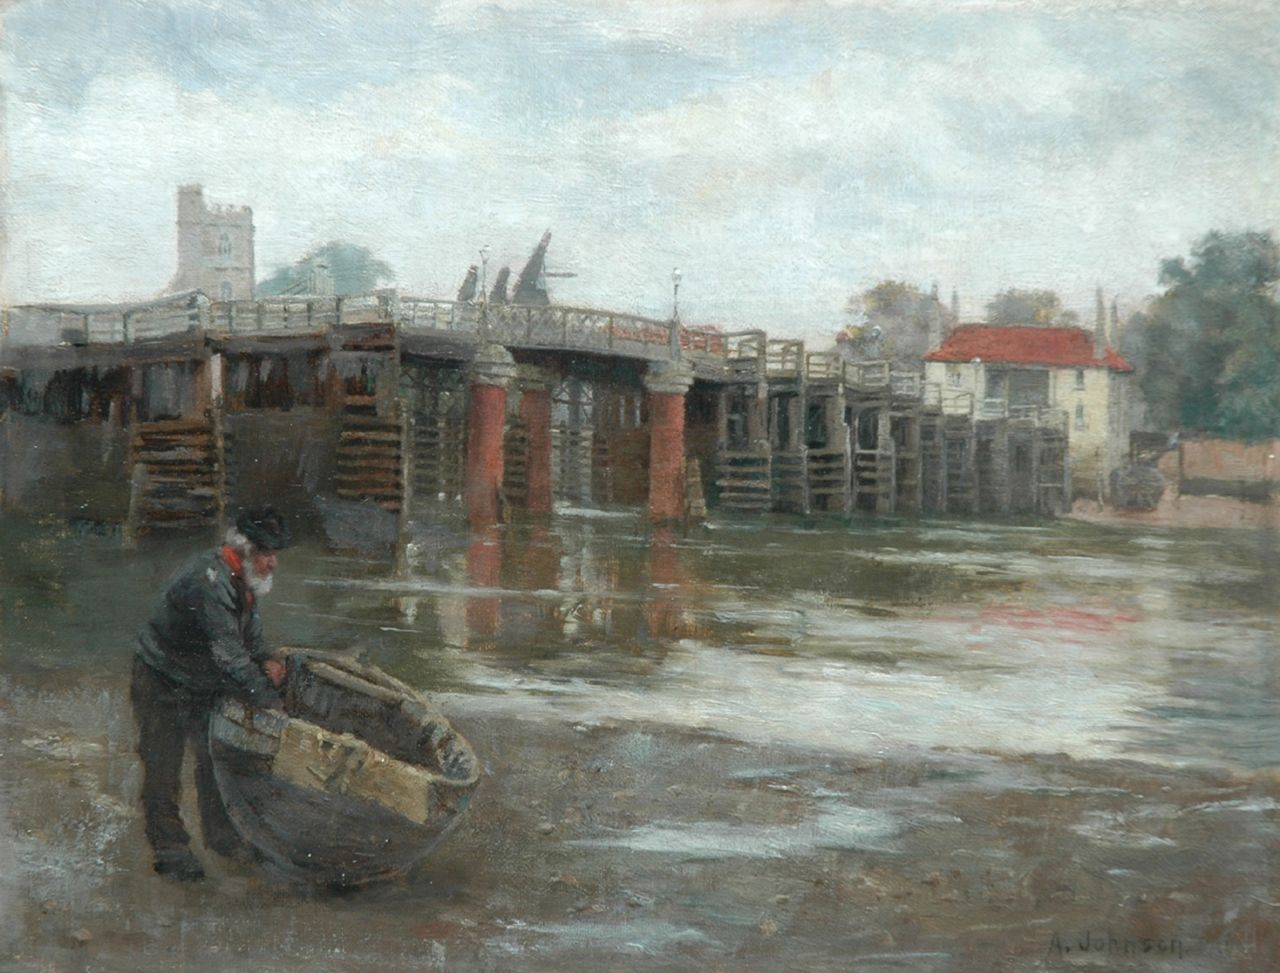 Johnson A.  | Alfred Johnson, The old bridge, Putney, oil on canvas laid down on panel 26.4 x 34.3 cm, signed l.r.